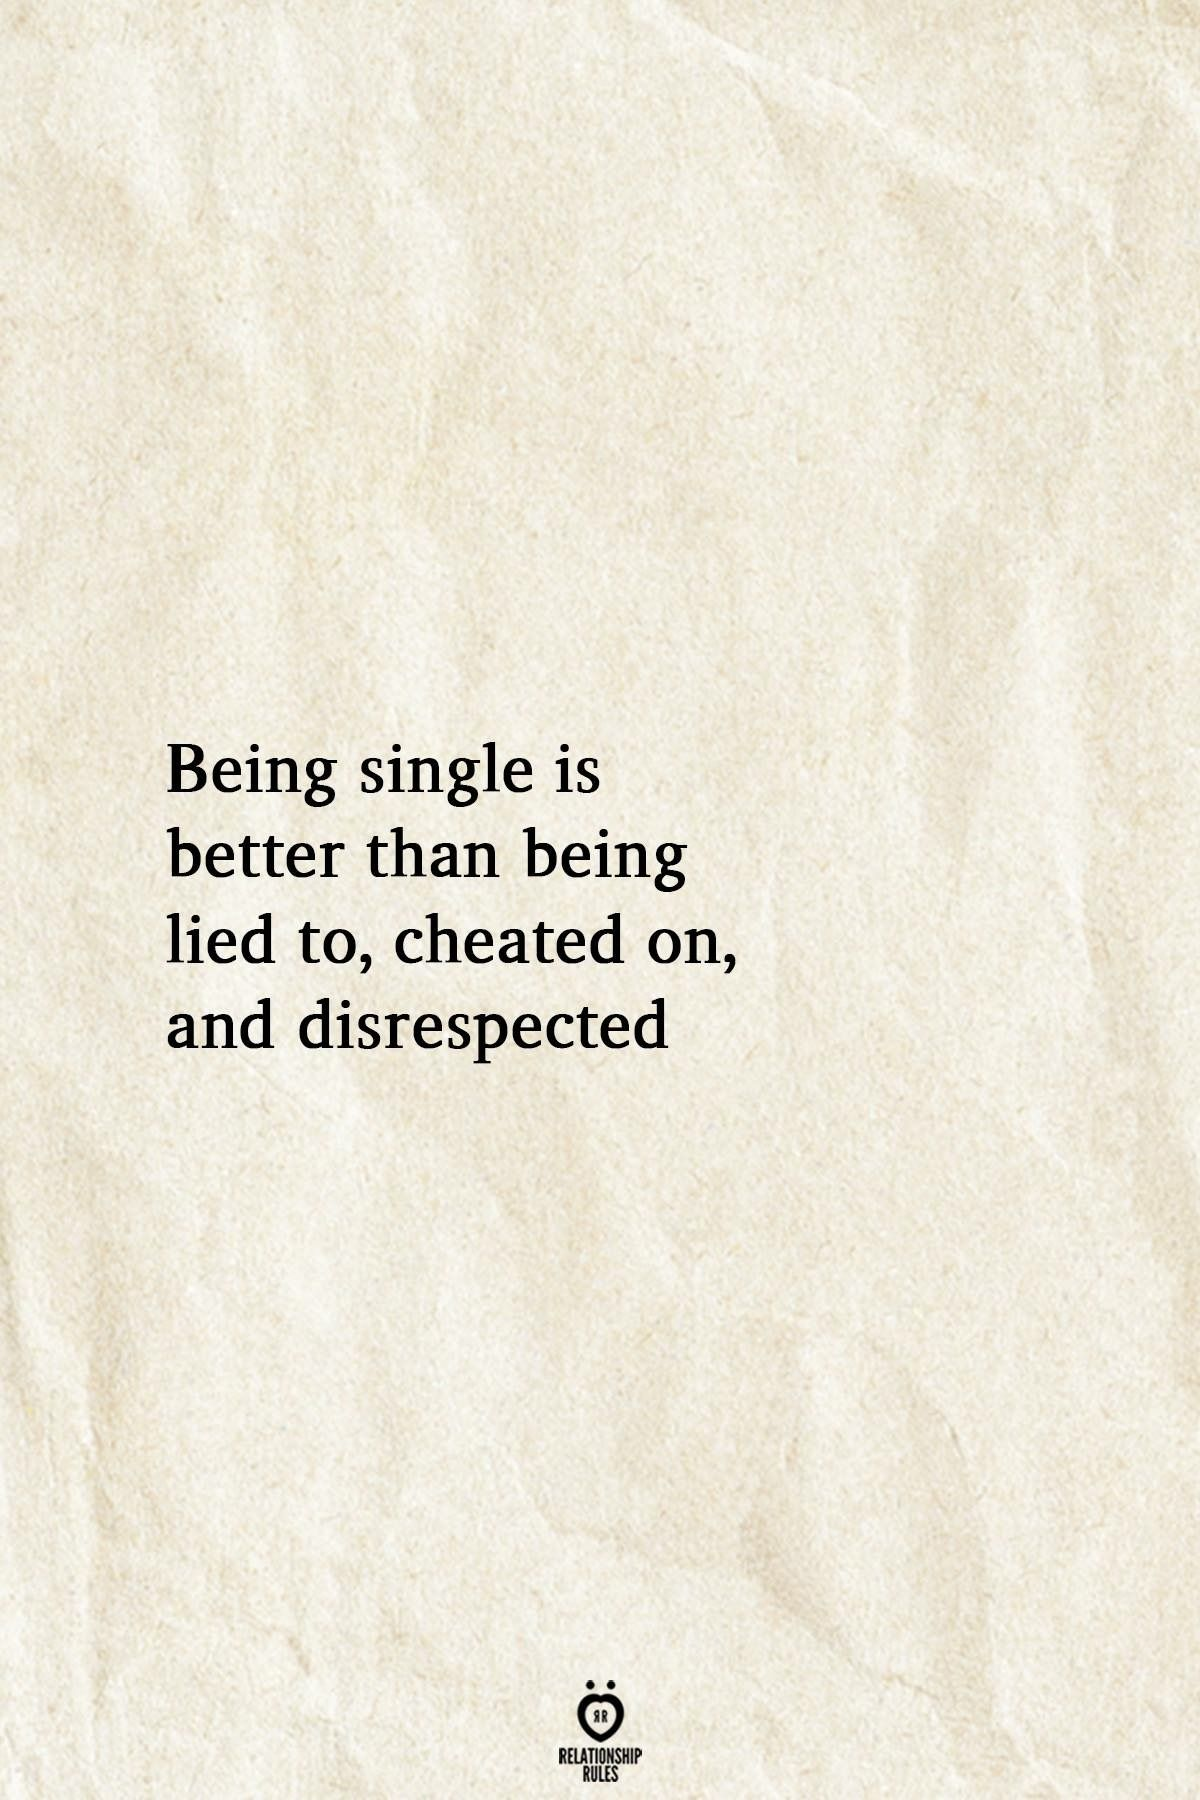 Pin by Quinness Clark on Dating Do's | Relationship quotes